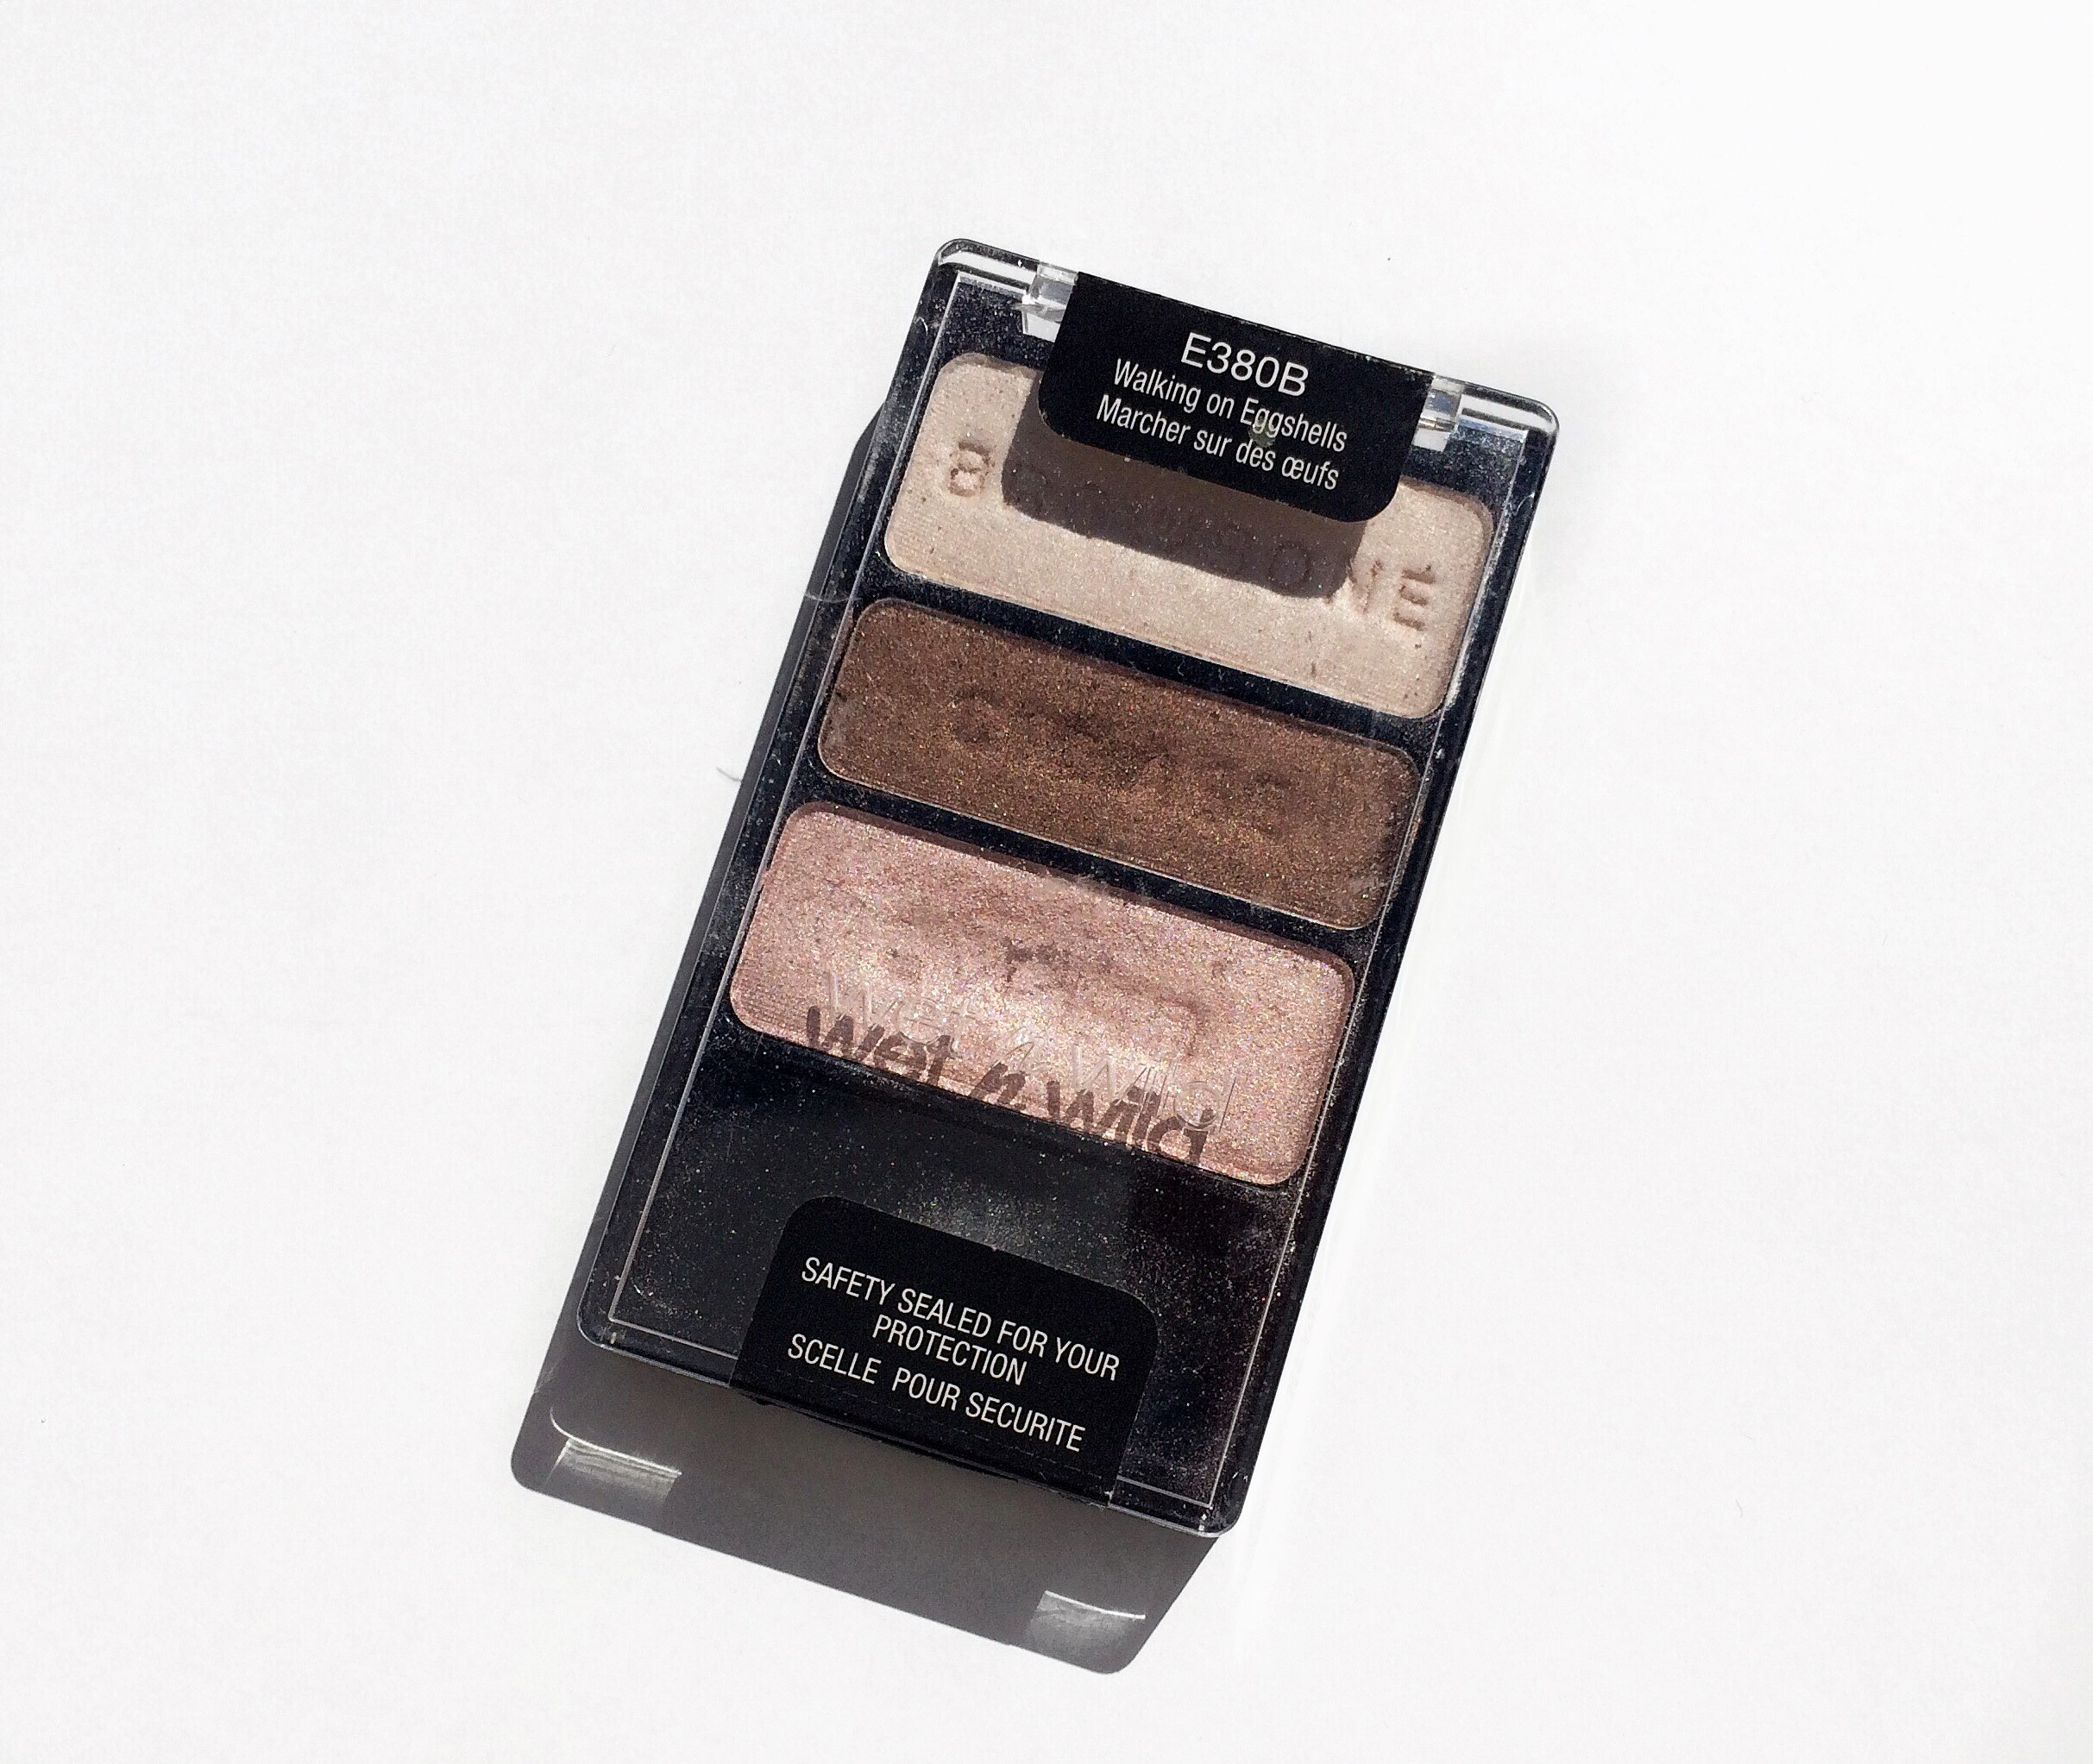 Wet 'n' Wild Walking On Eggshells Eyeshadow Review Swatch and Dupe (5).jpg